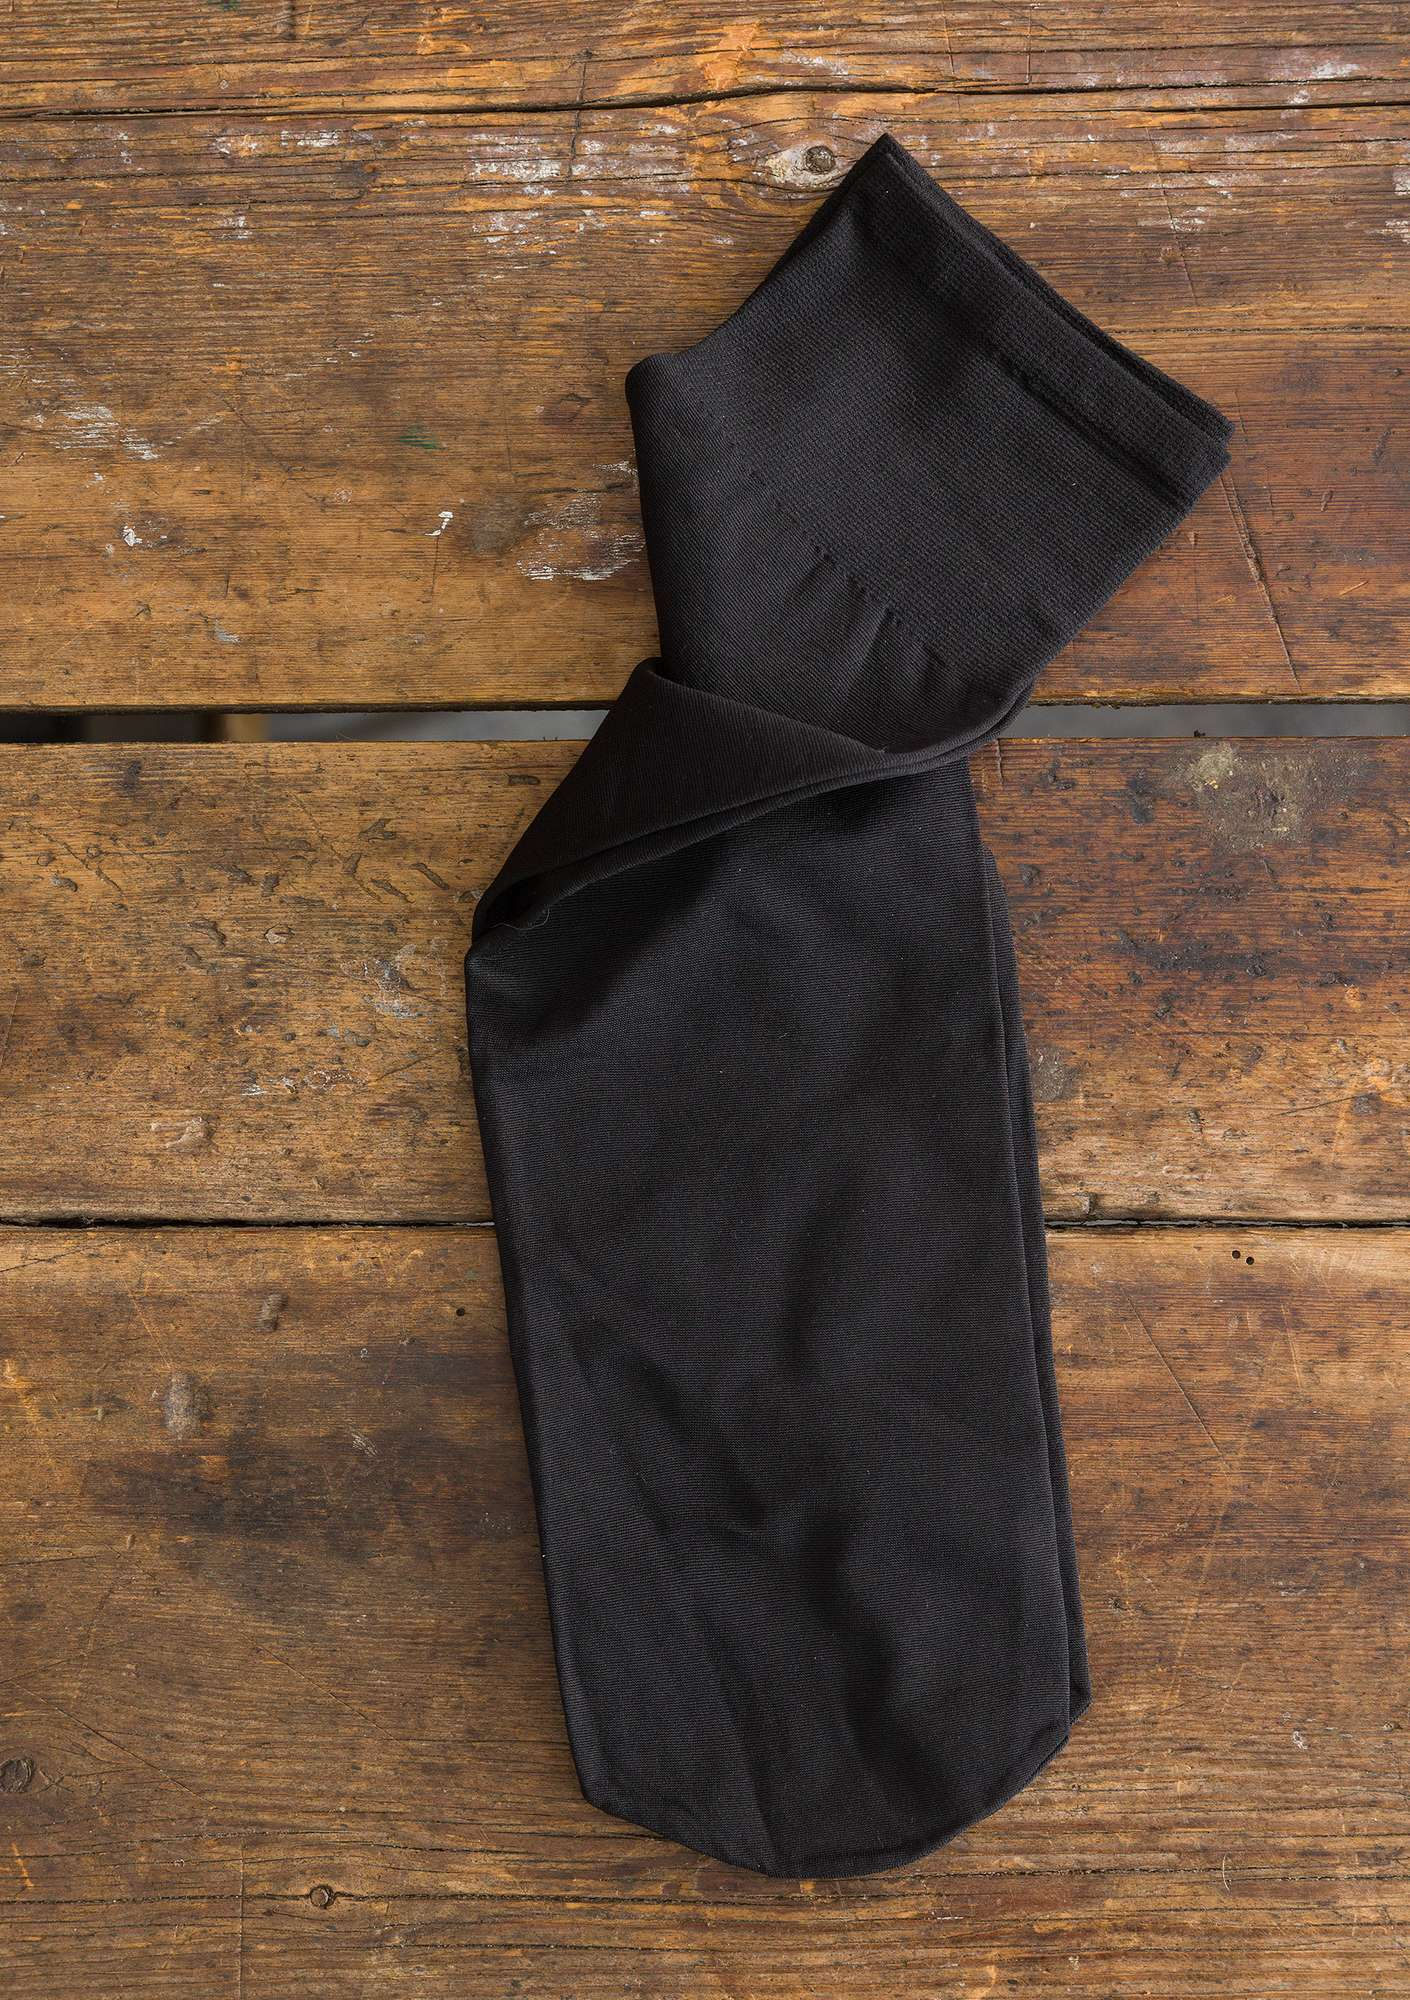 Solid-colour knee-highs black